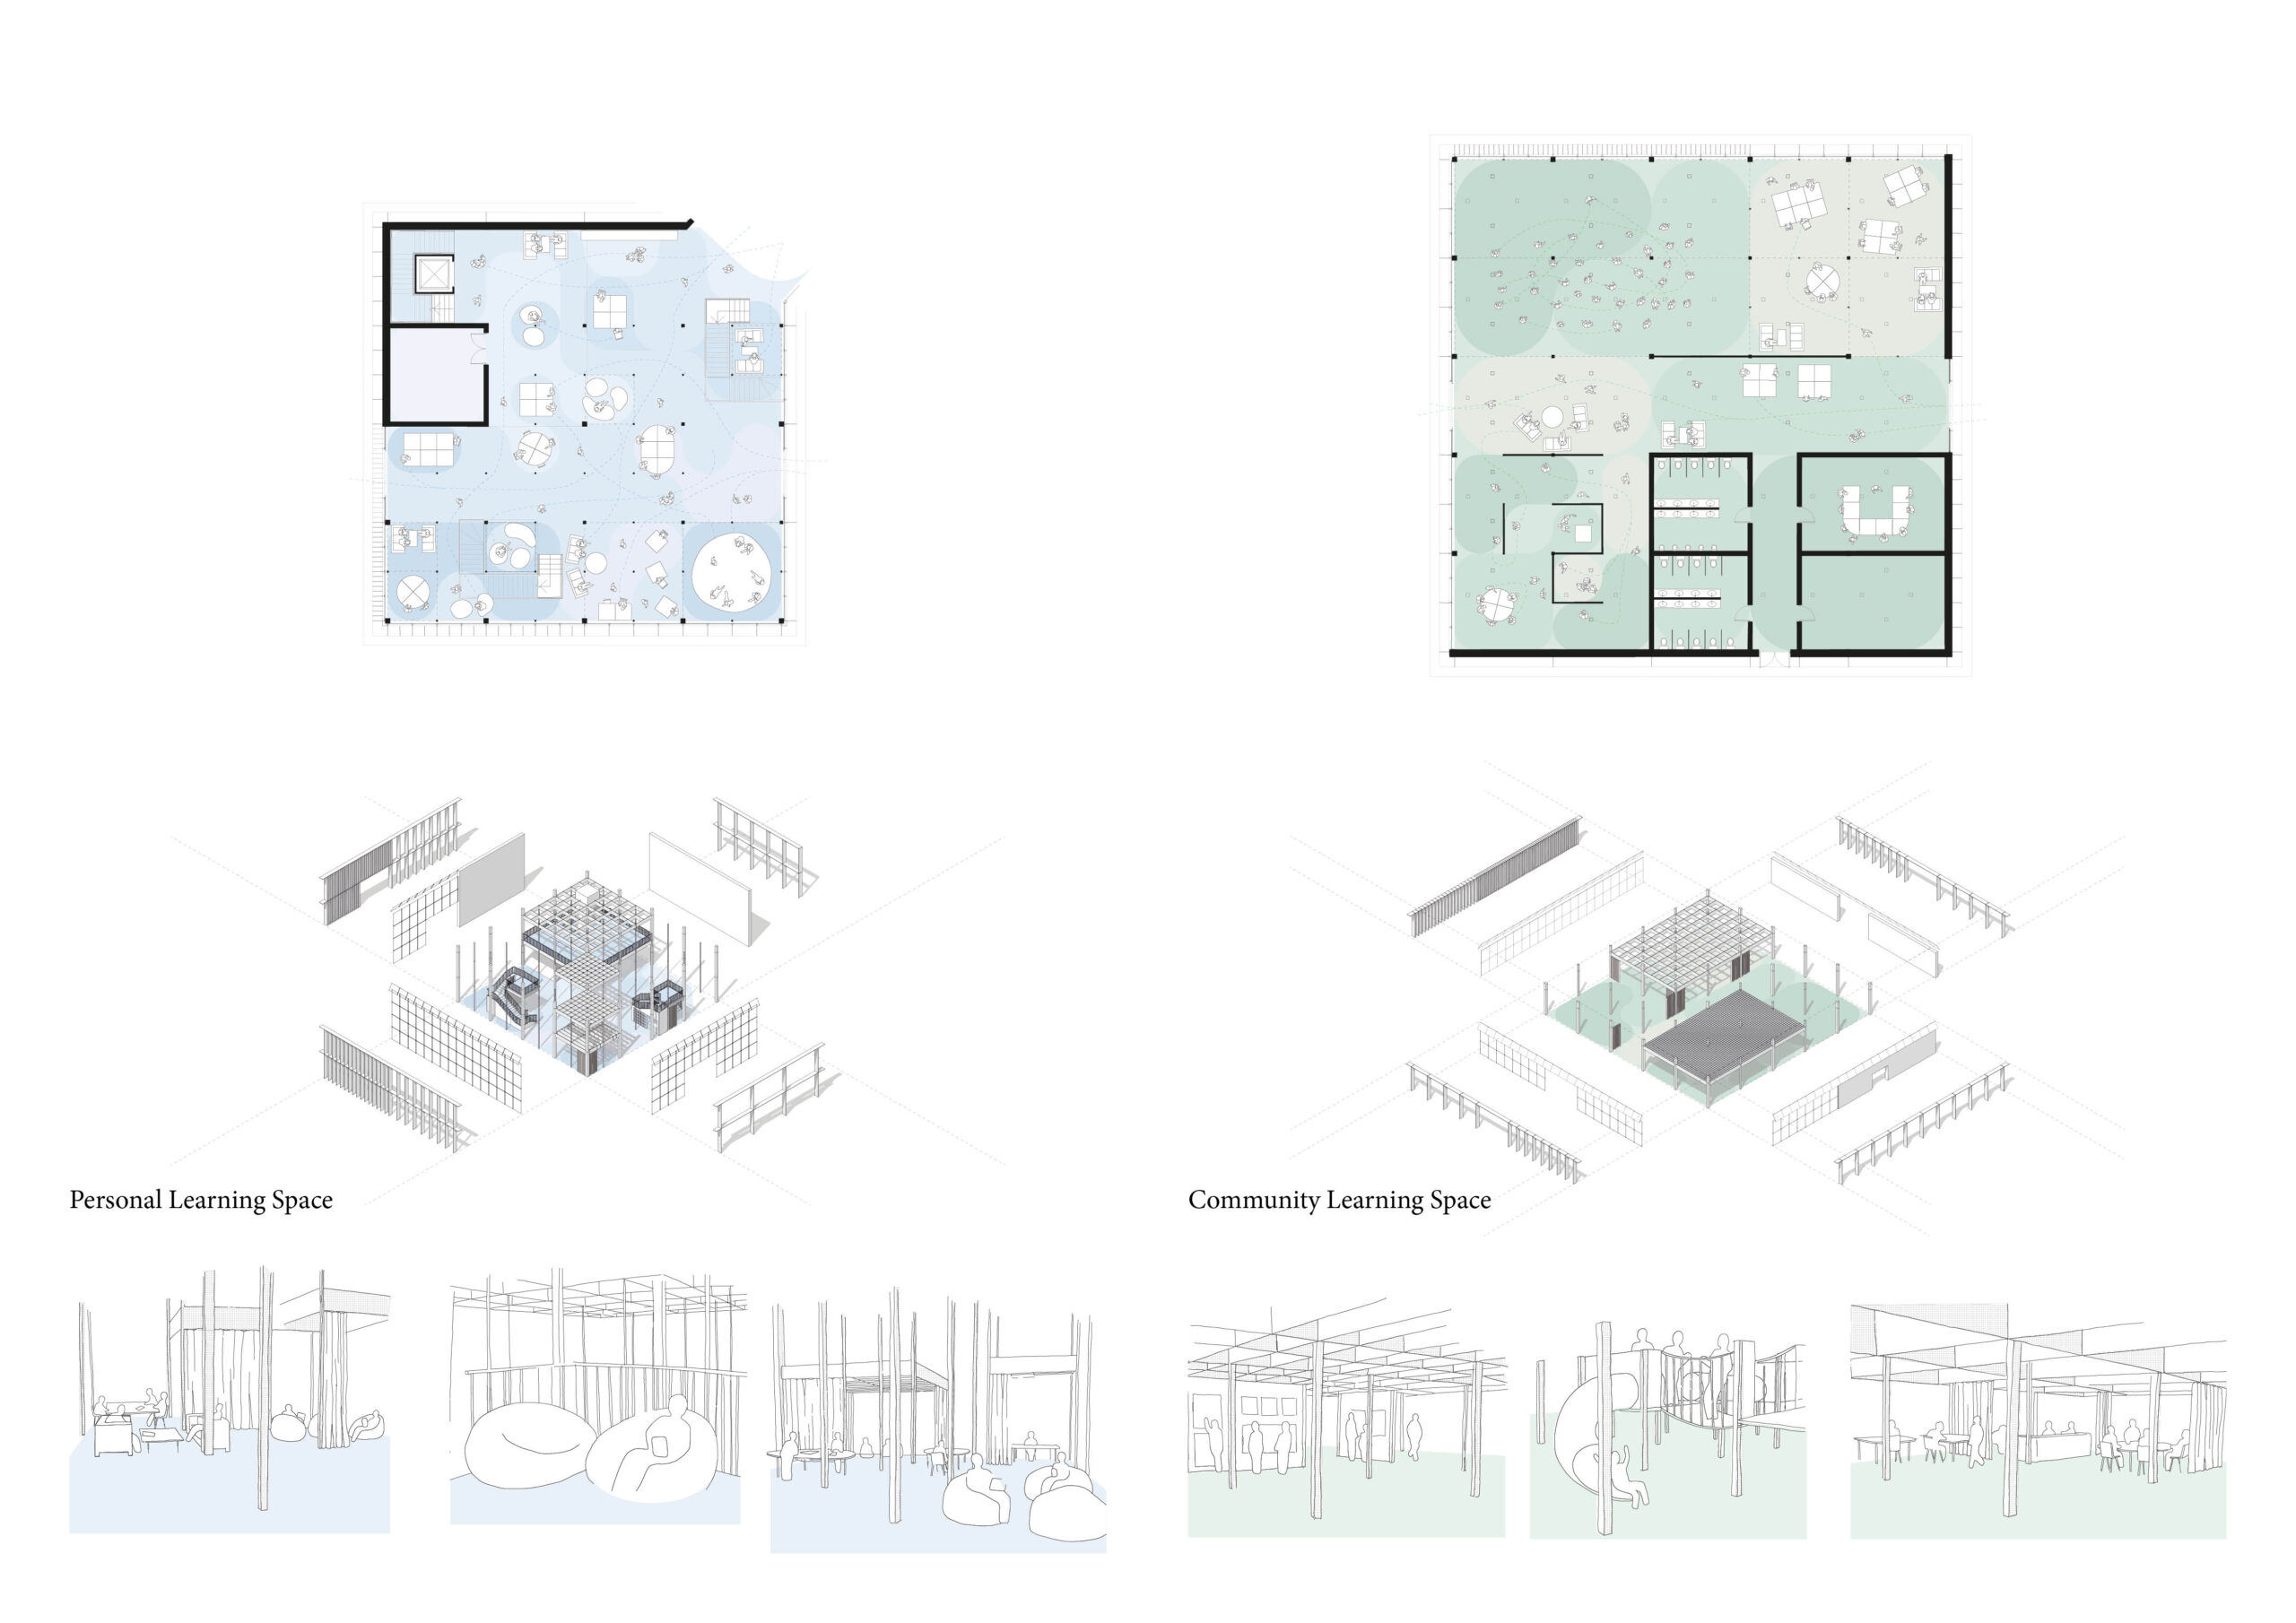 Portfolio Page of the Personal and Community Learning Spaces, with plans, axonometric drawings and perspectives.